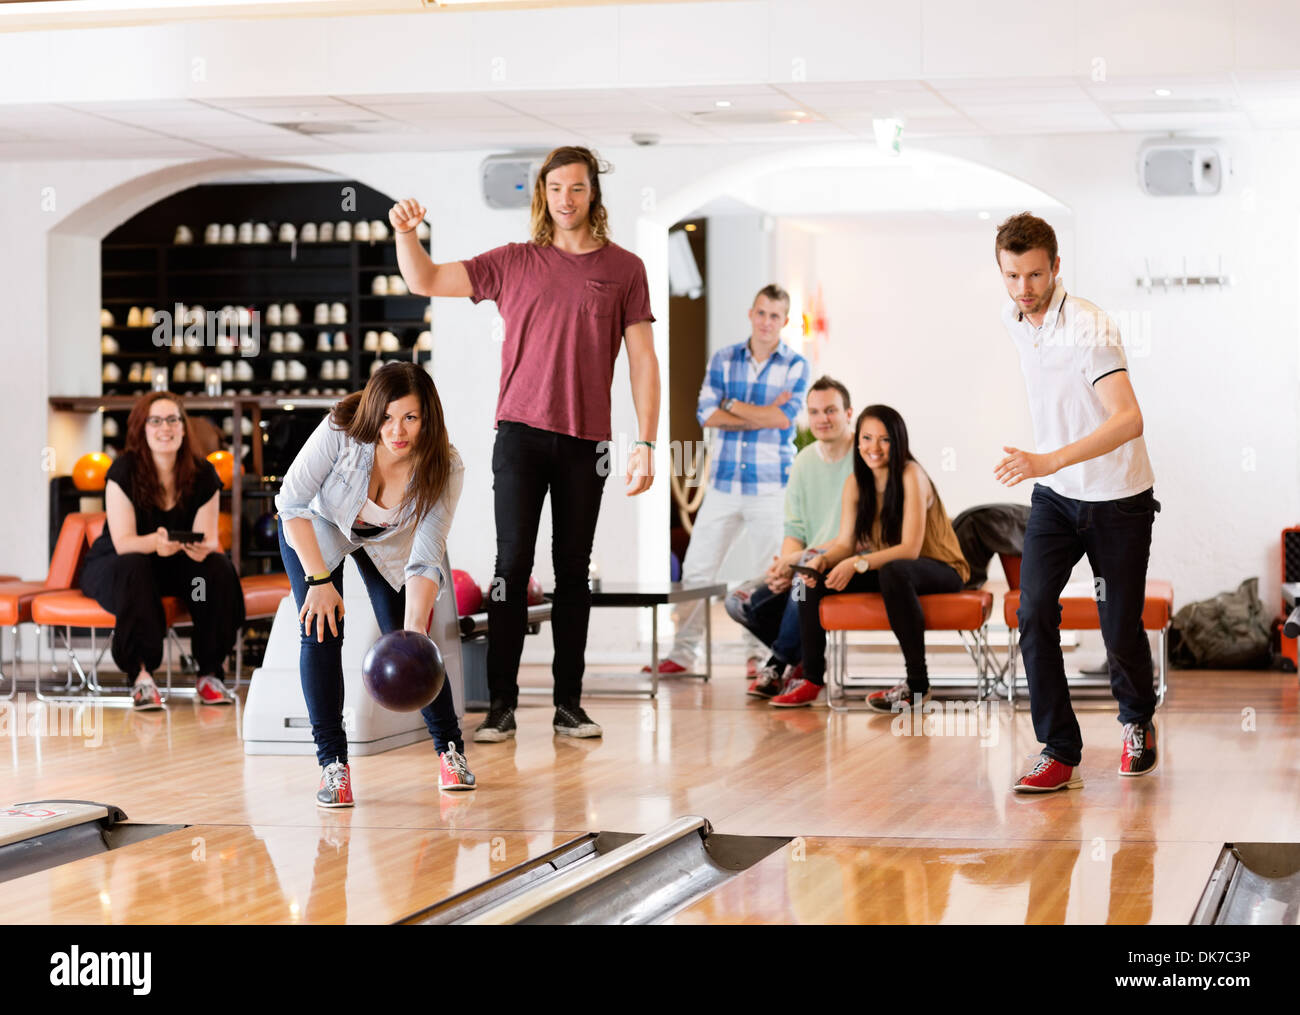 Man And Woman Bowling With Friends in Background - Stock Image